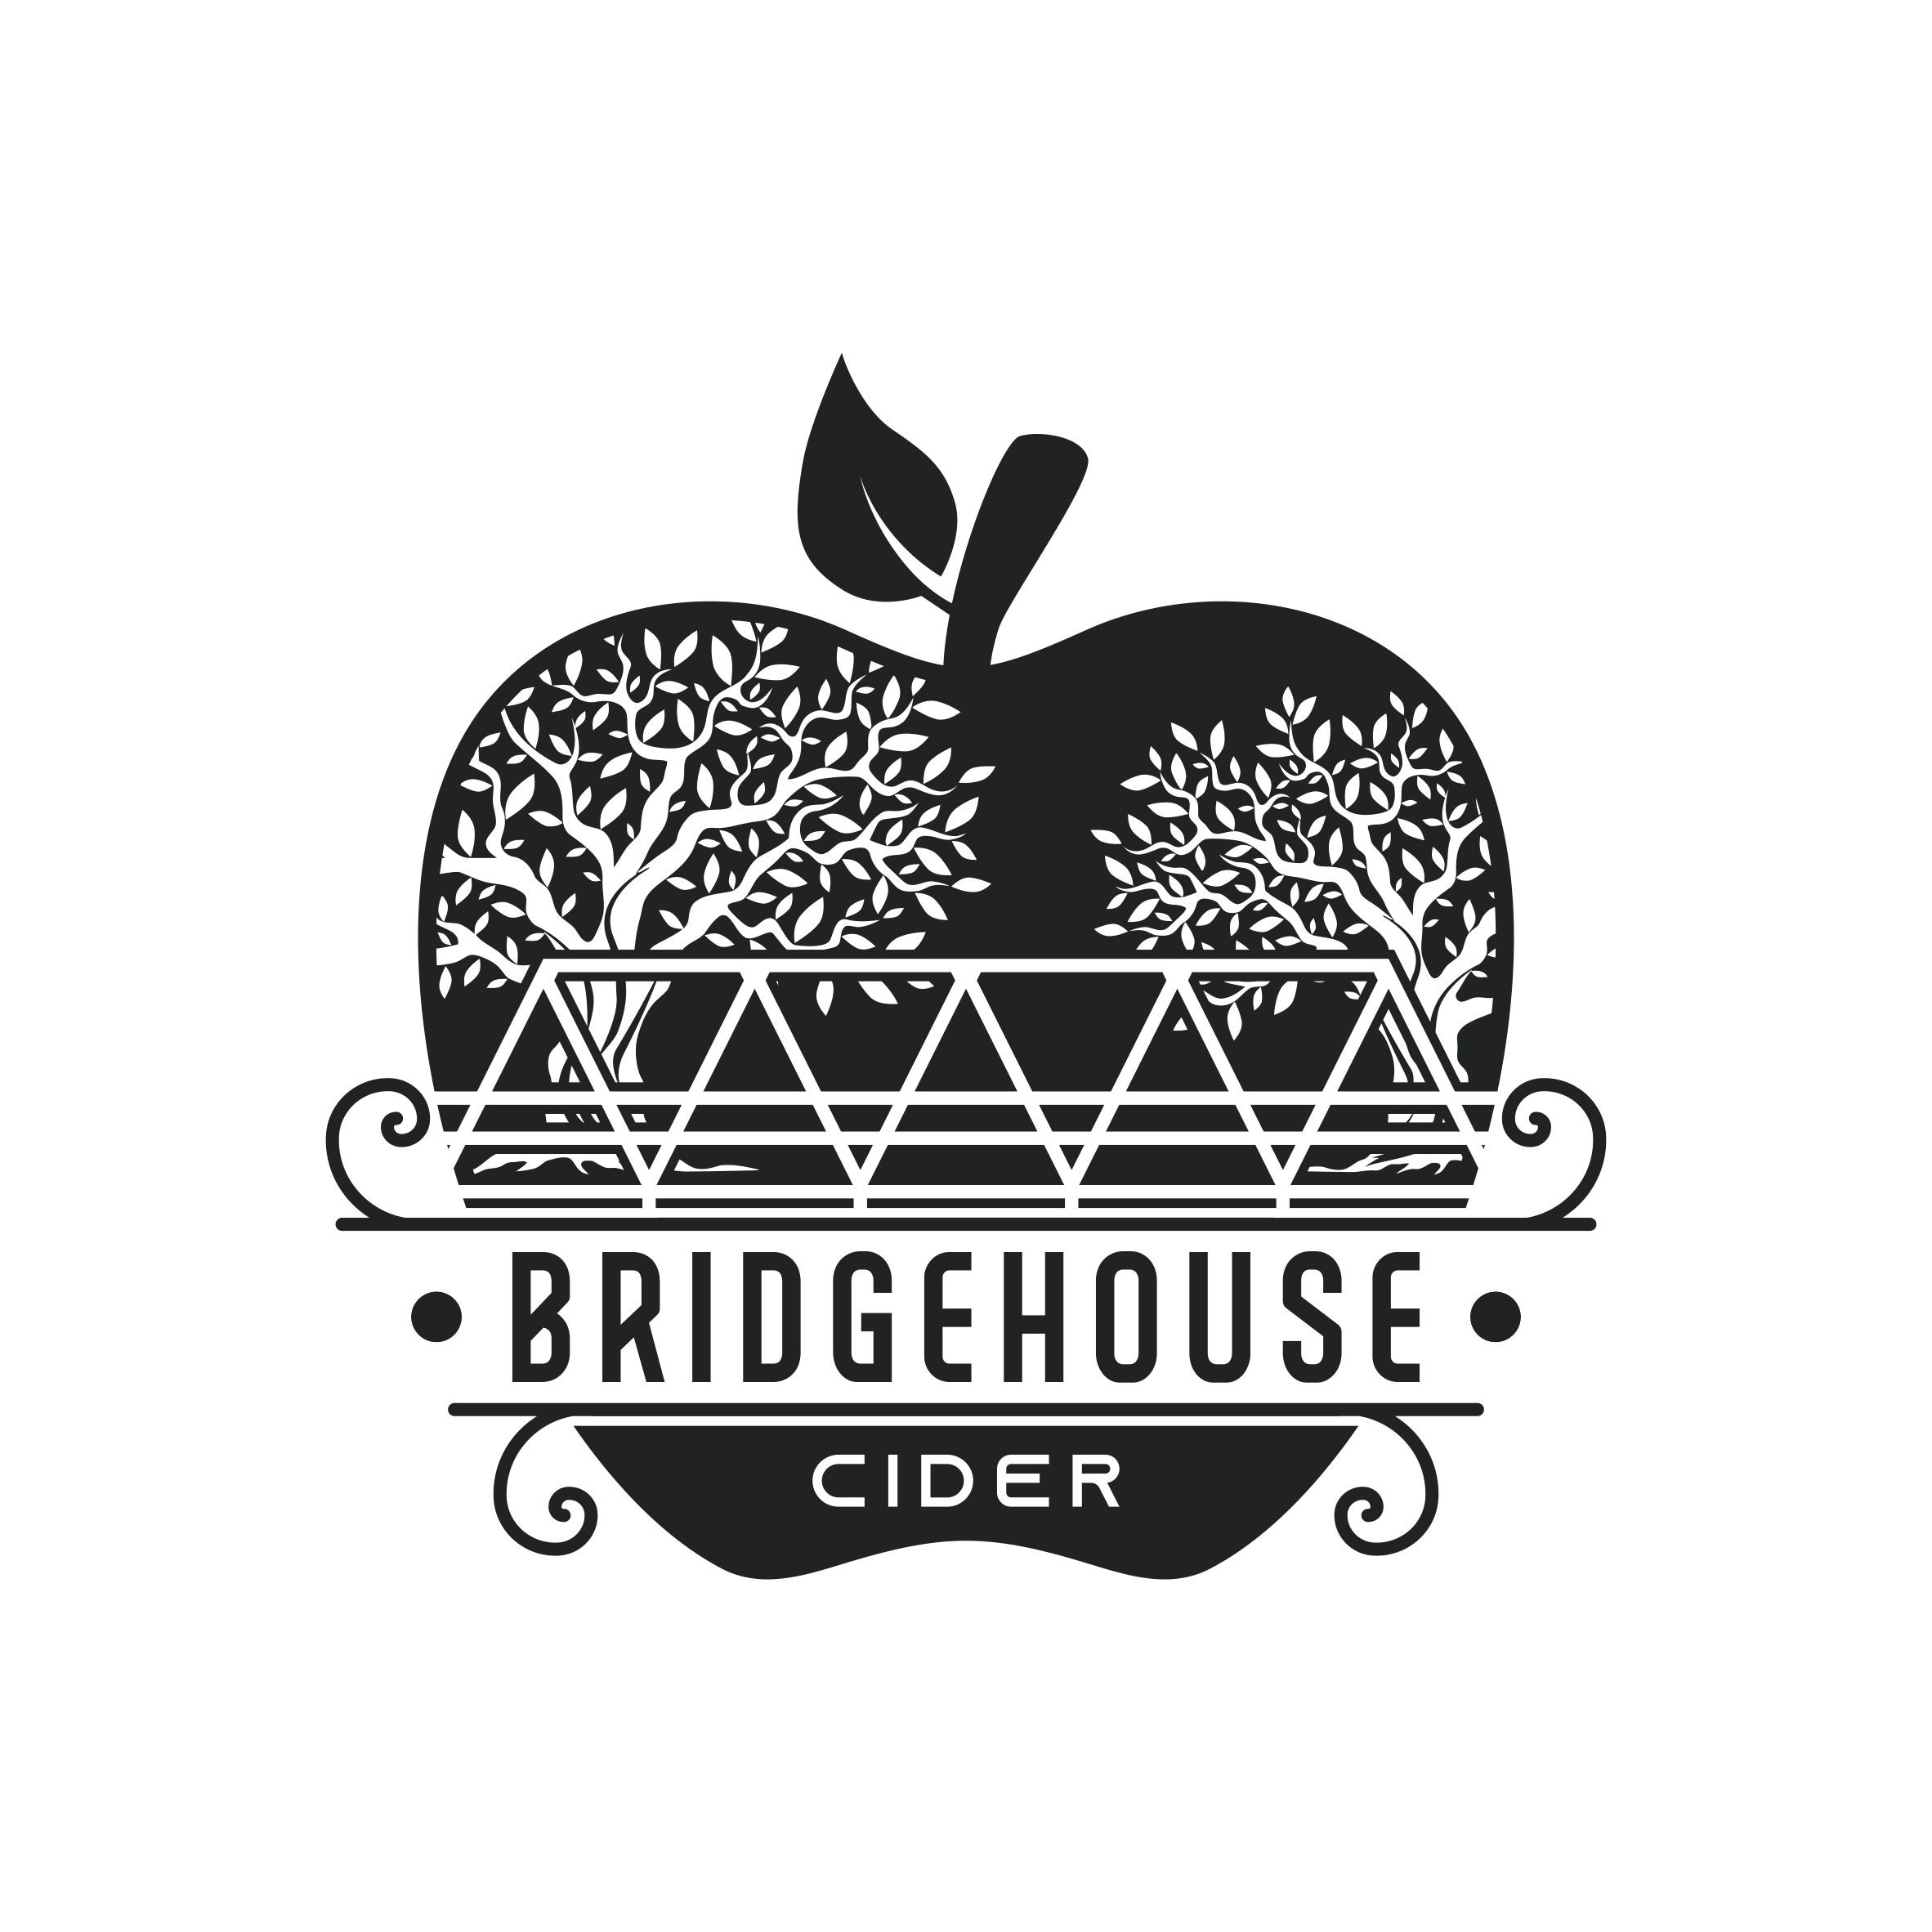 New hand-made, locally owned hard cider maker needs logo and brand identity